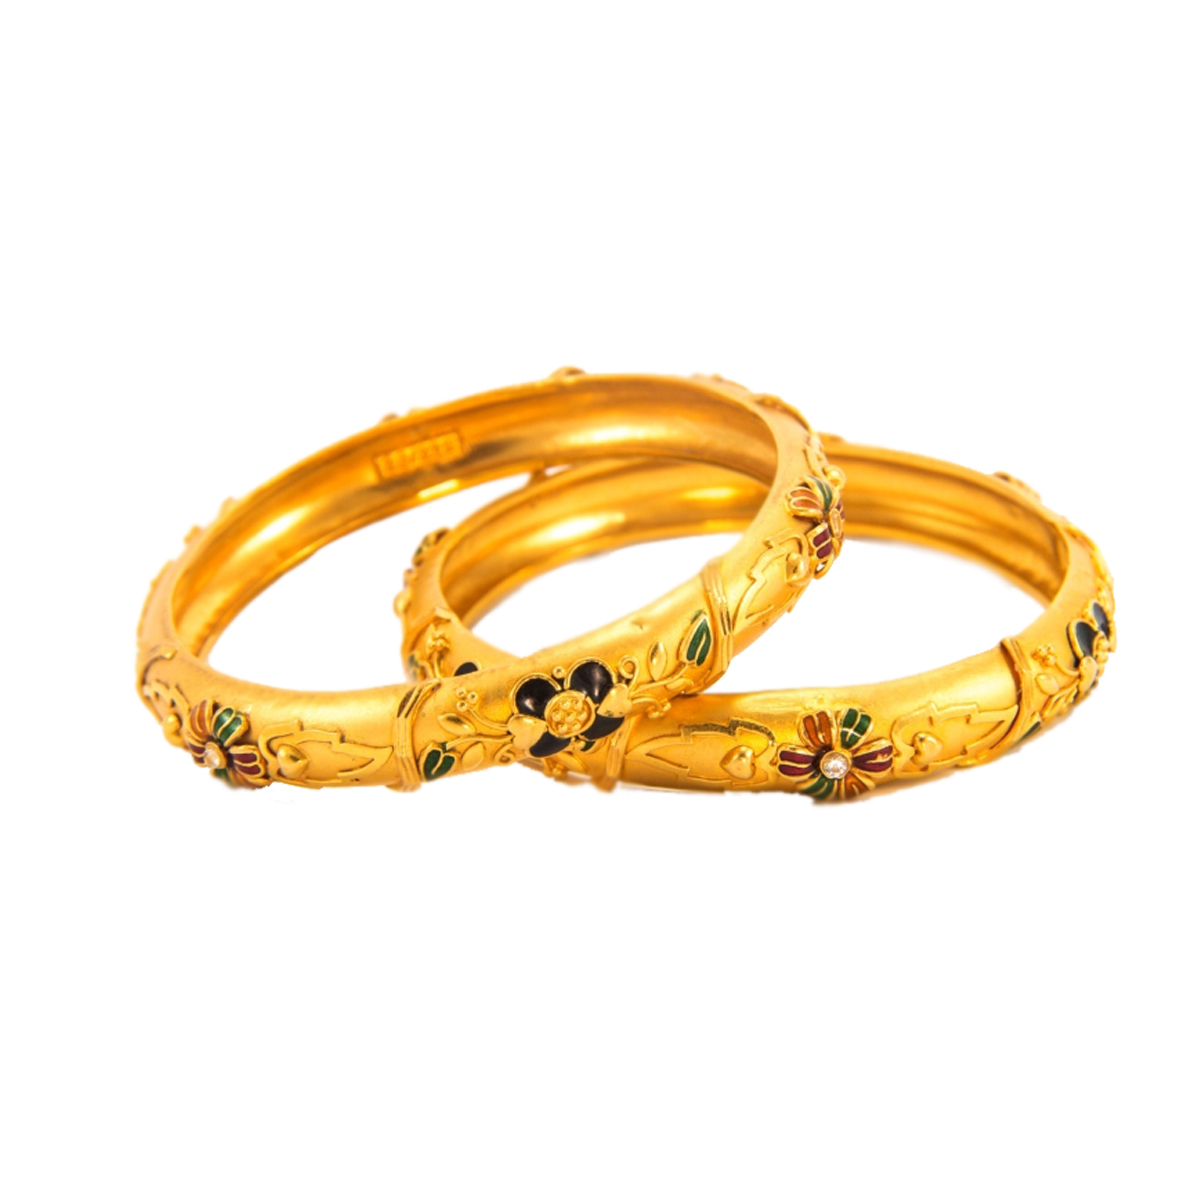 kade jewellers gold tola photos a bangle gram nepali traditional jewellery panchakanyajewellers chura weight media id panchakanya